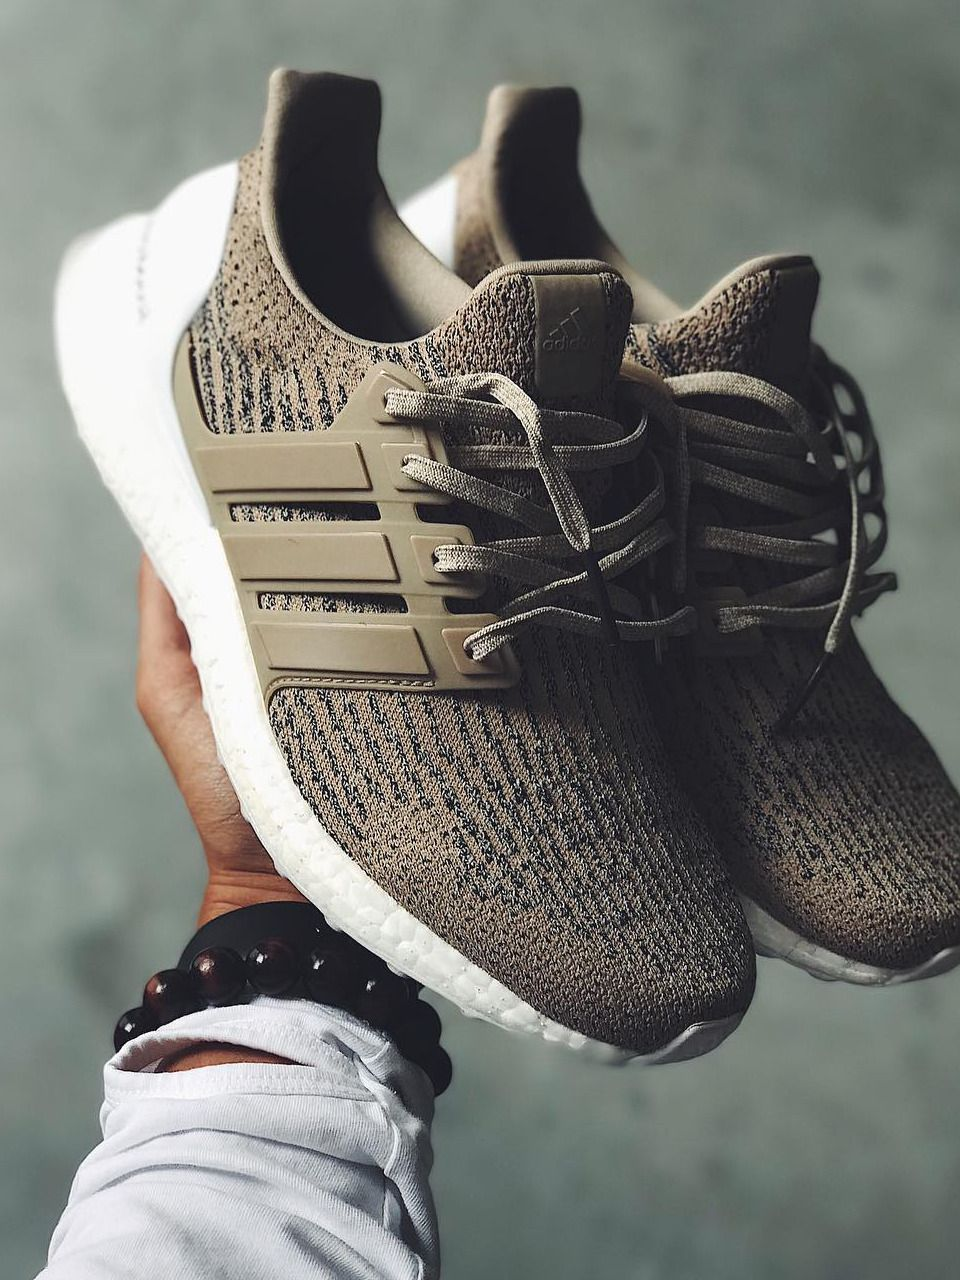 reputable site 9625b 83574 Adidas Ultra Boost 3.0 - Trace Khaki sample (by... – Sweetsoles – Sneakers,  kicks and trainers. On feet.